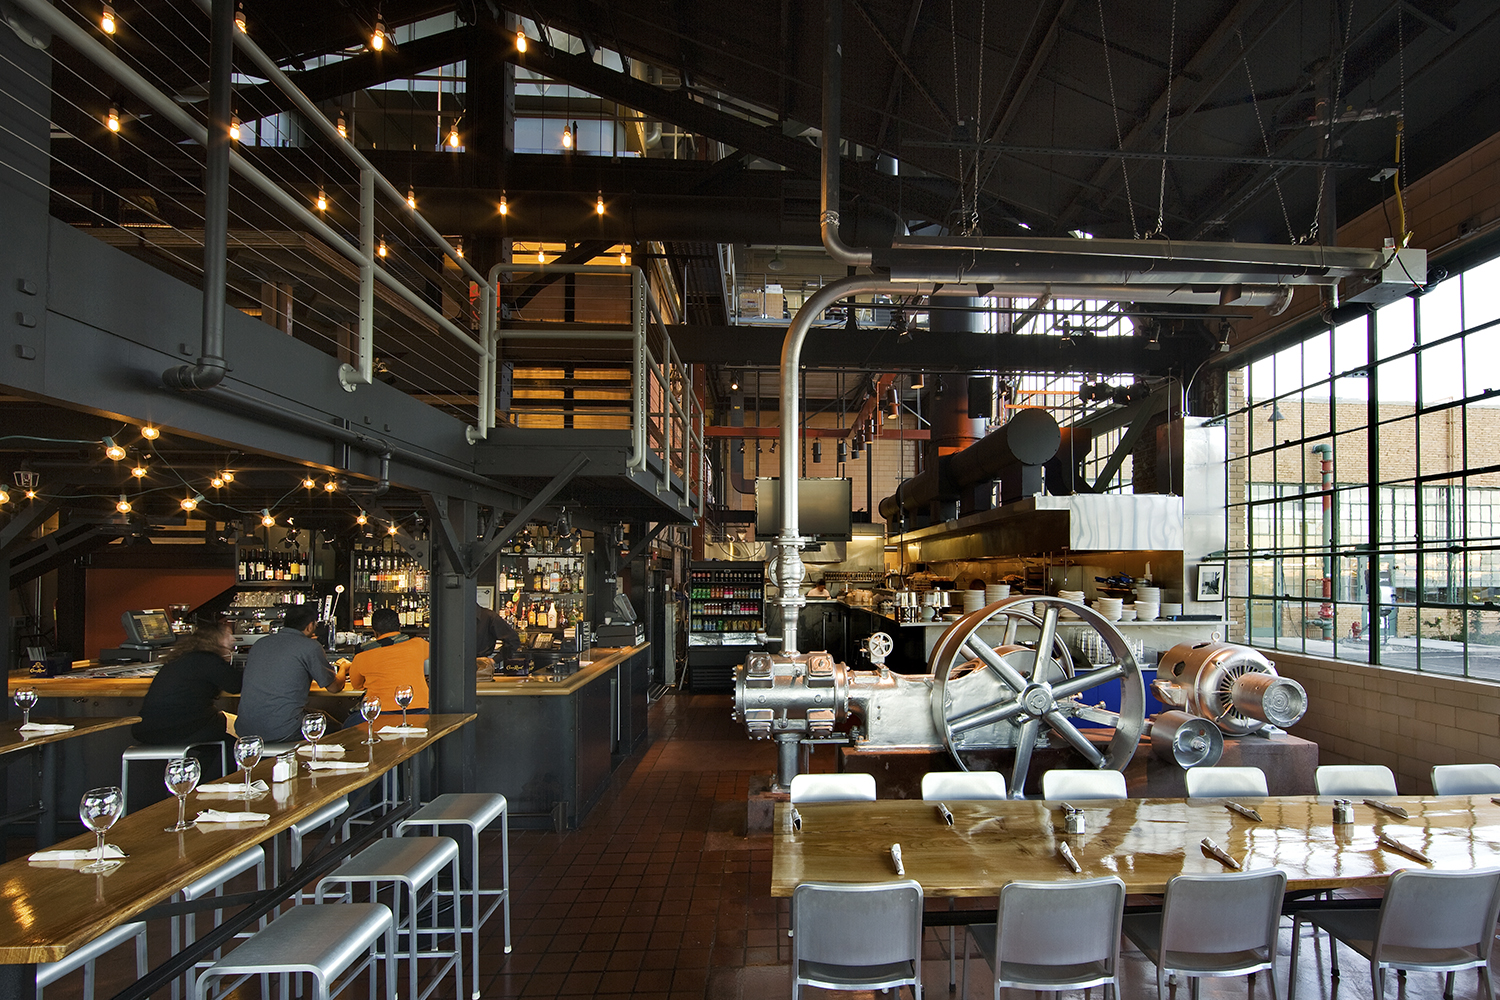 02_Projects_The Boiler House Restaurant.jpg